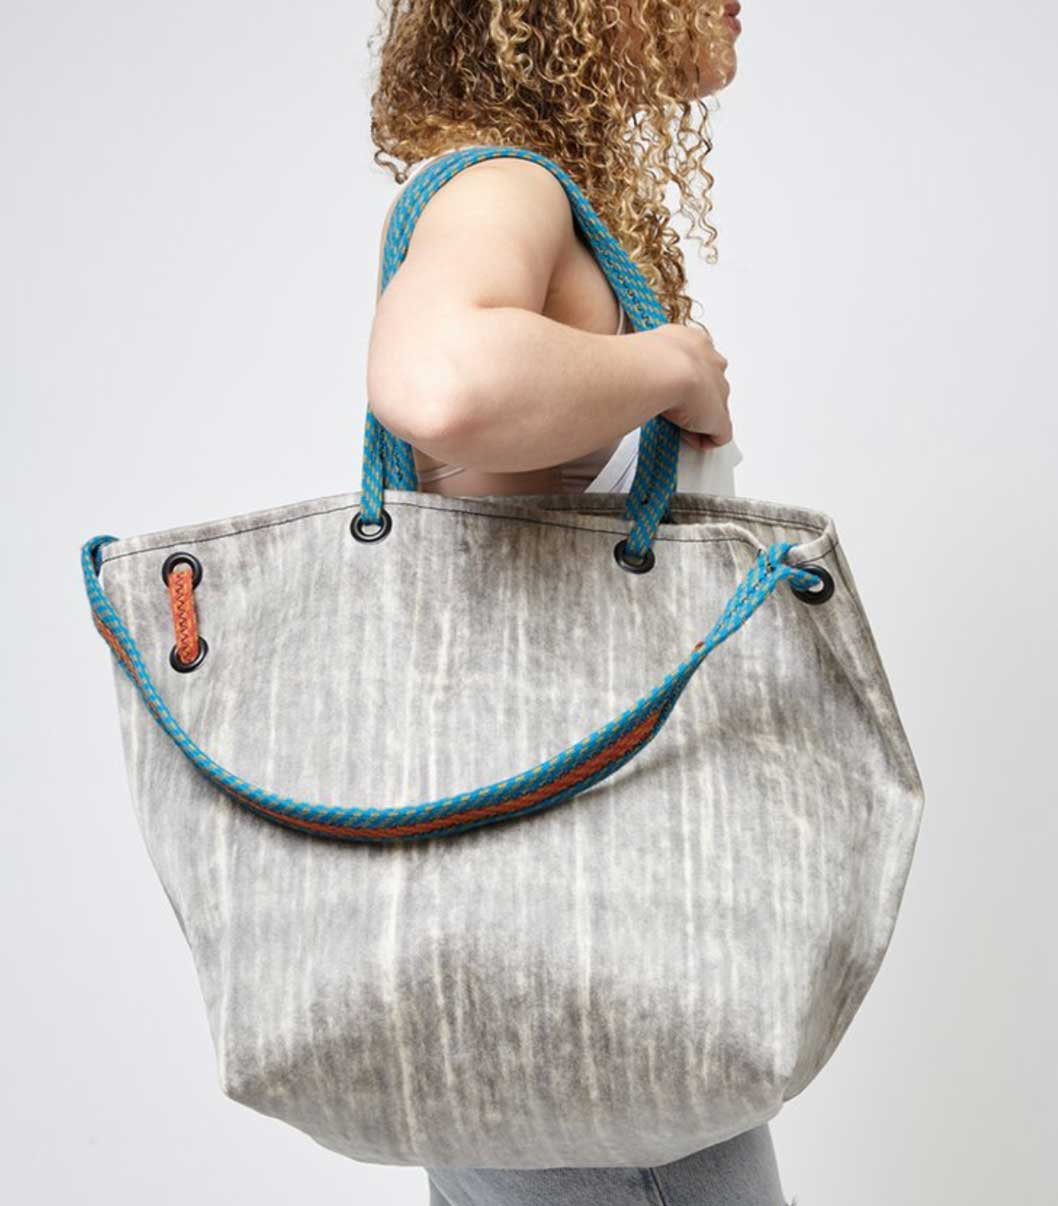 Rewilder sustainable bag label Los Angeles good fashion guide Eco Lookbook